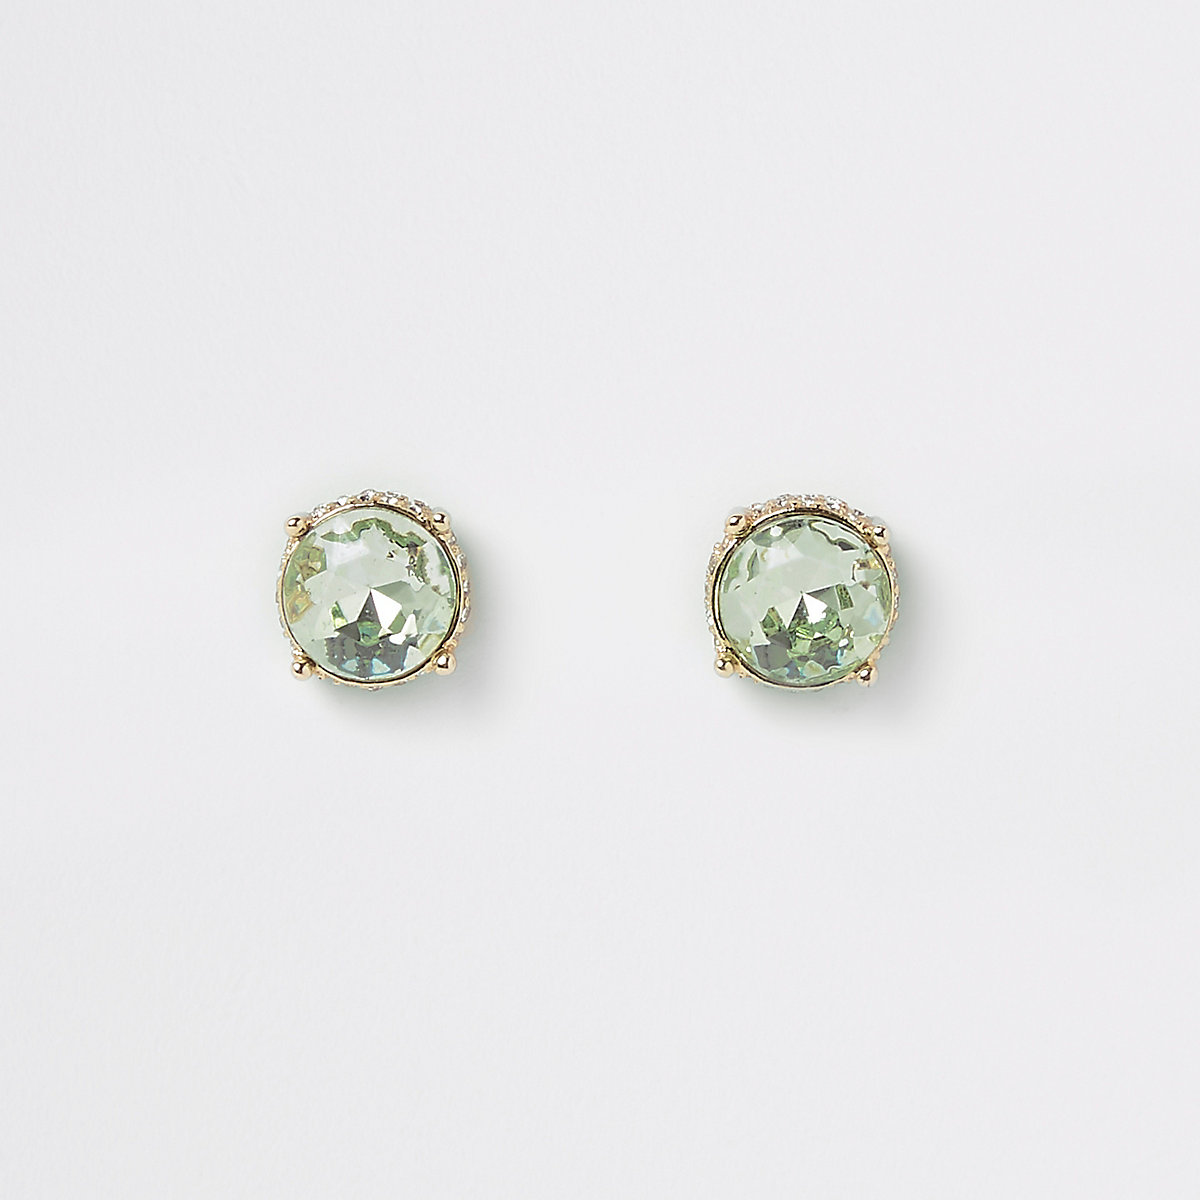 Gold tone green jewel stud earrings